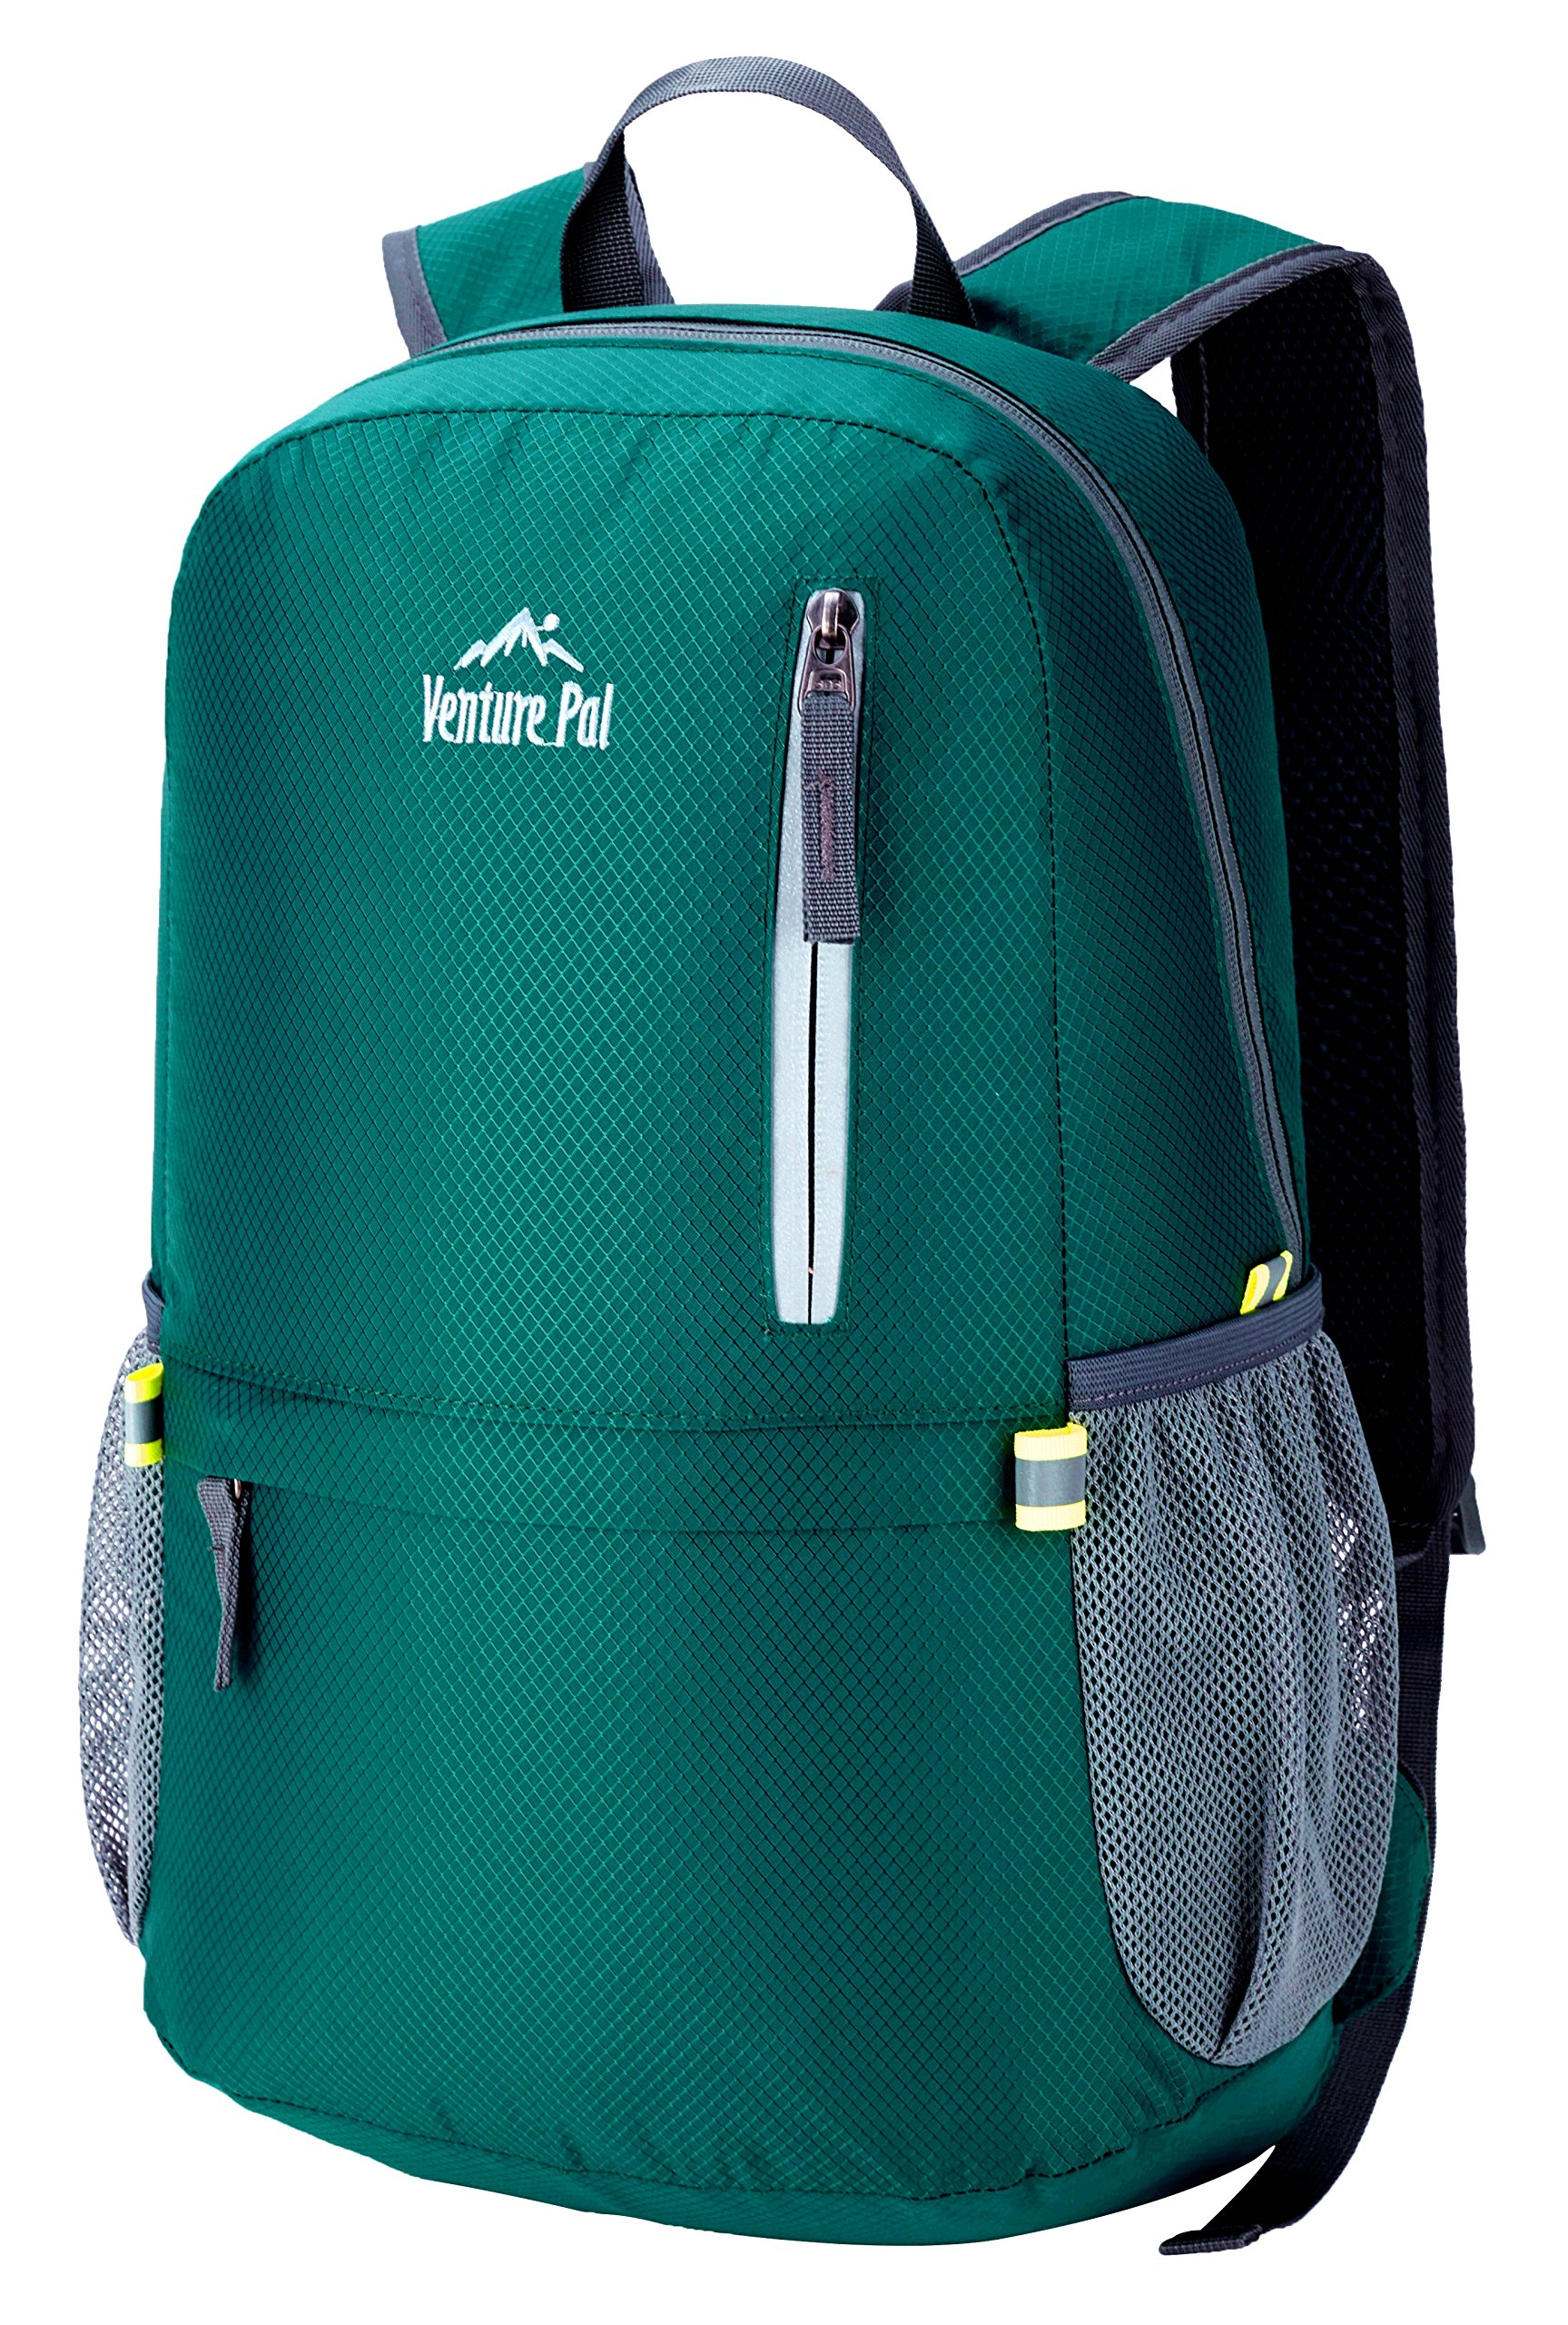 Venture Pal 25L Travel Backpack - Durable Packable Lightweight Small Backpack Women Men (Green) … by Venture Pal (Image #3)